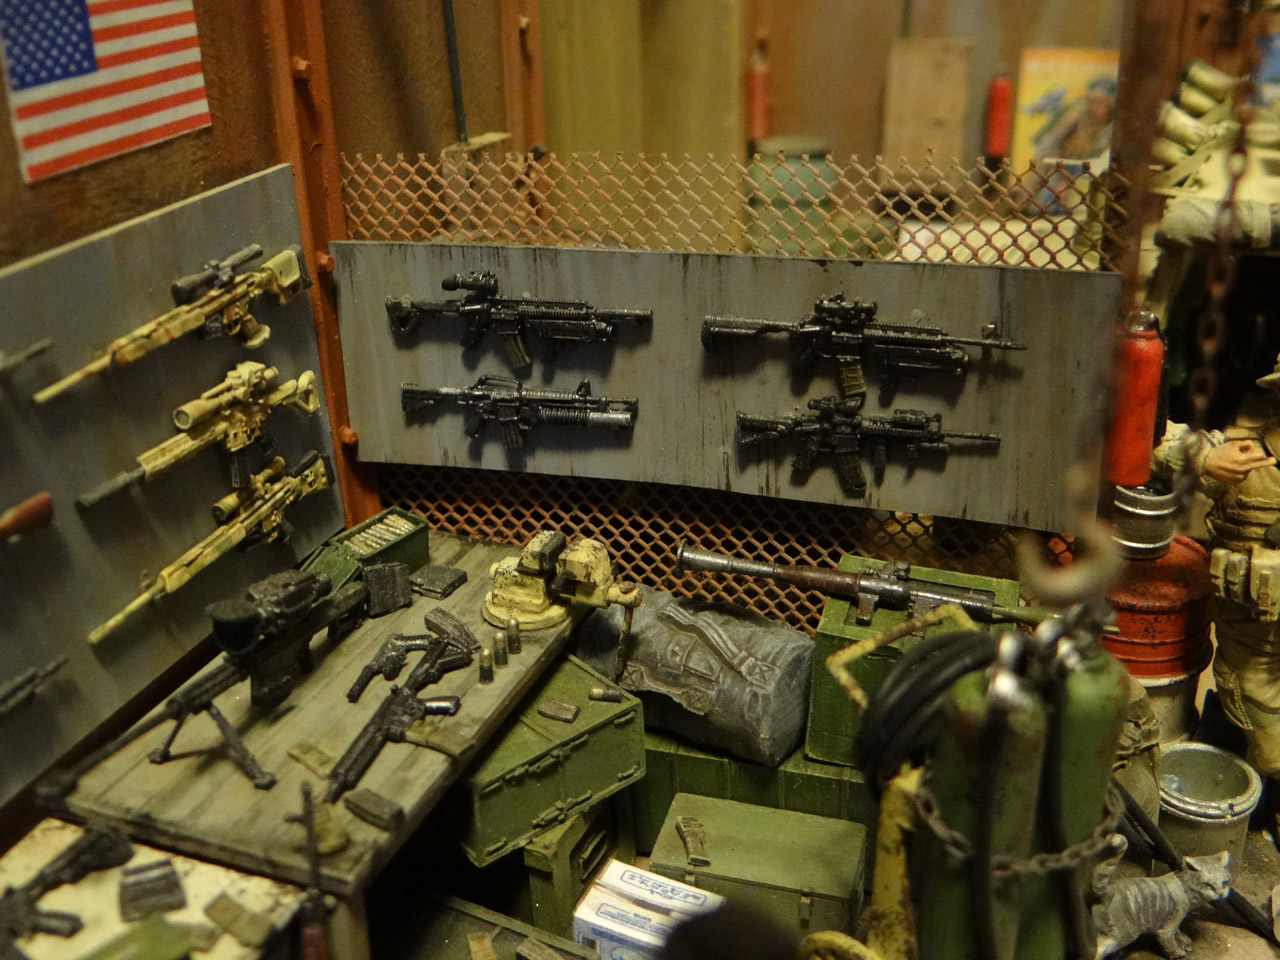 Dioramas and Vignettes: Enforcement to democracy, photo #10